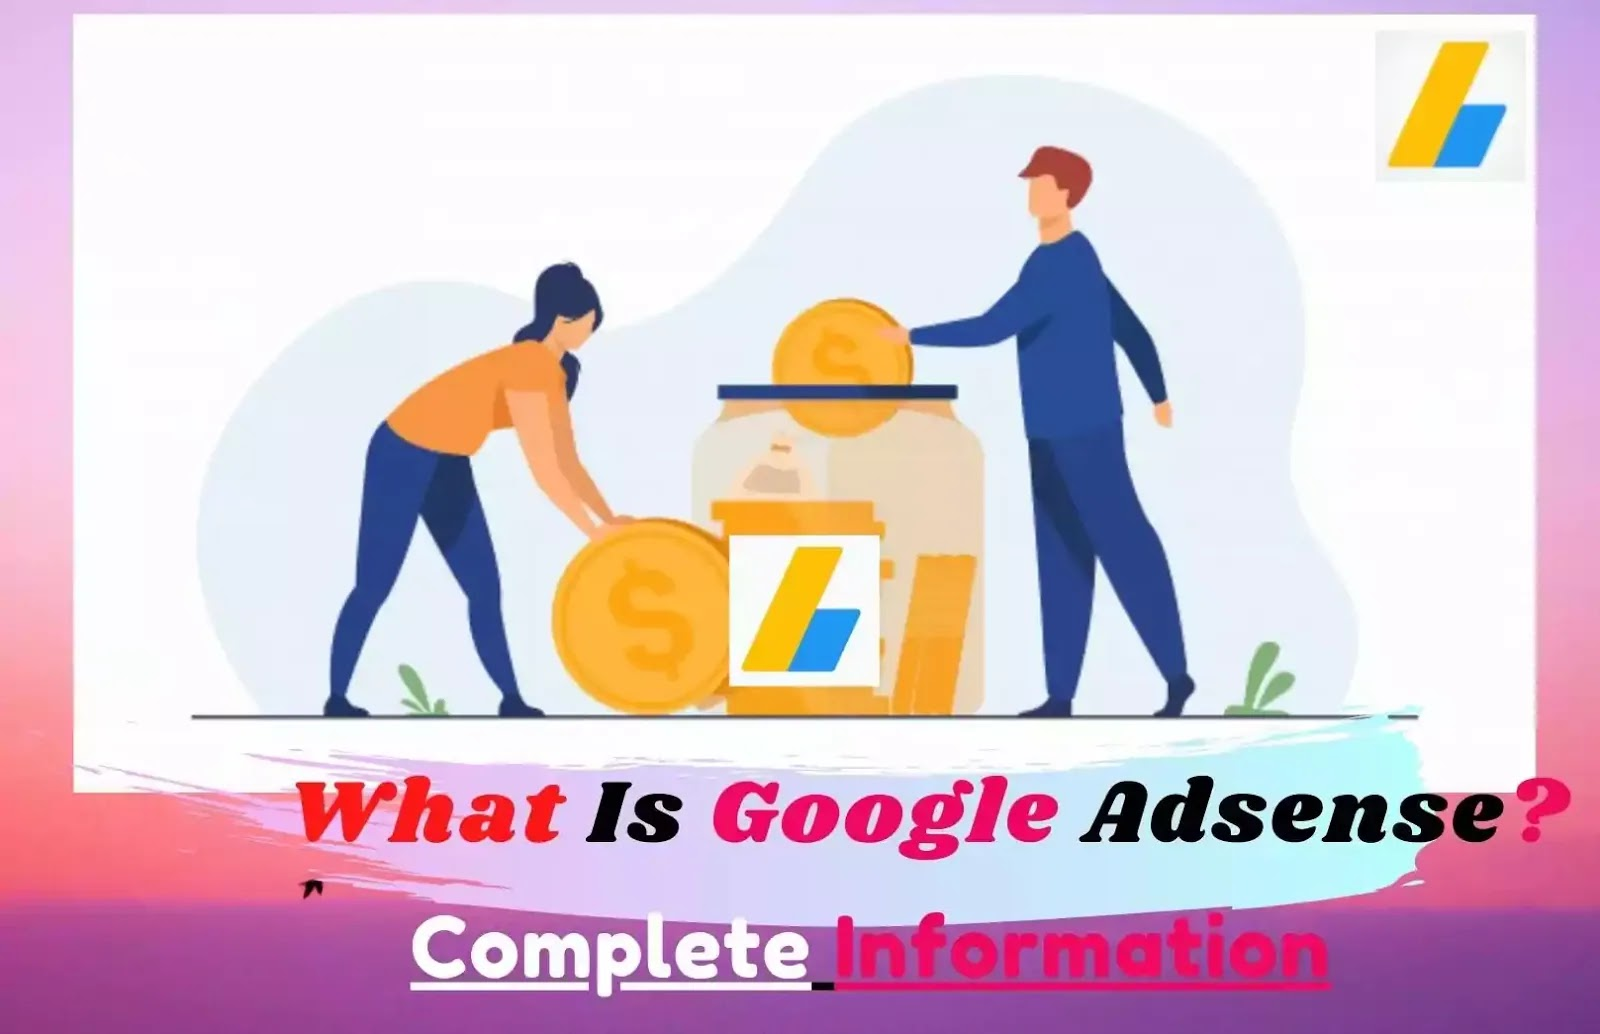 What is Google Adsense? - A complete Information About Google Adsense